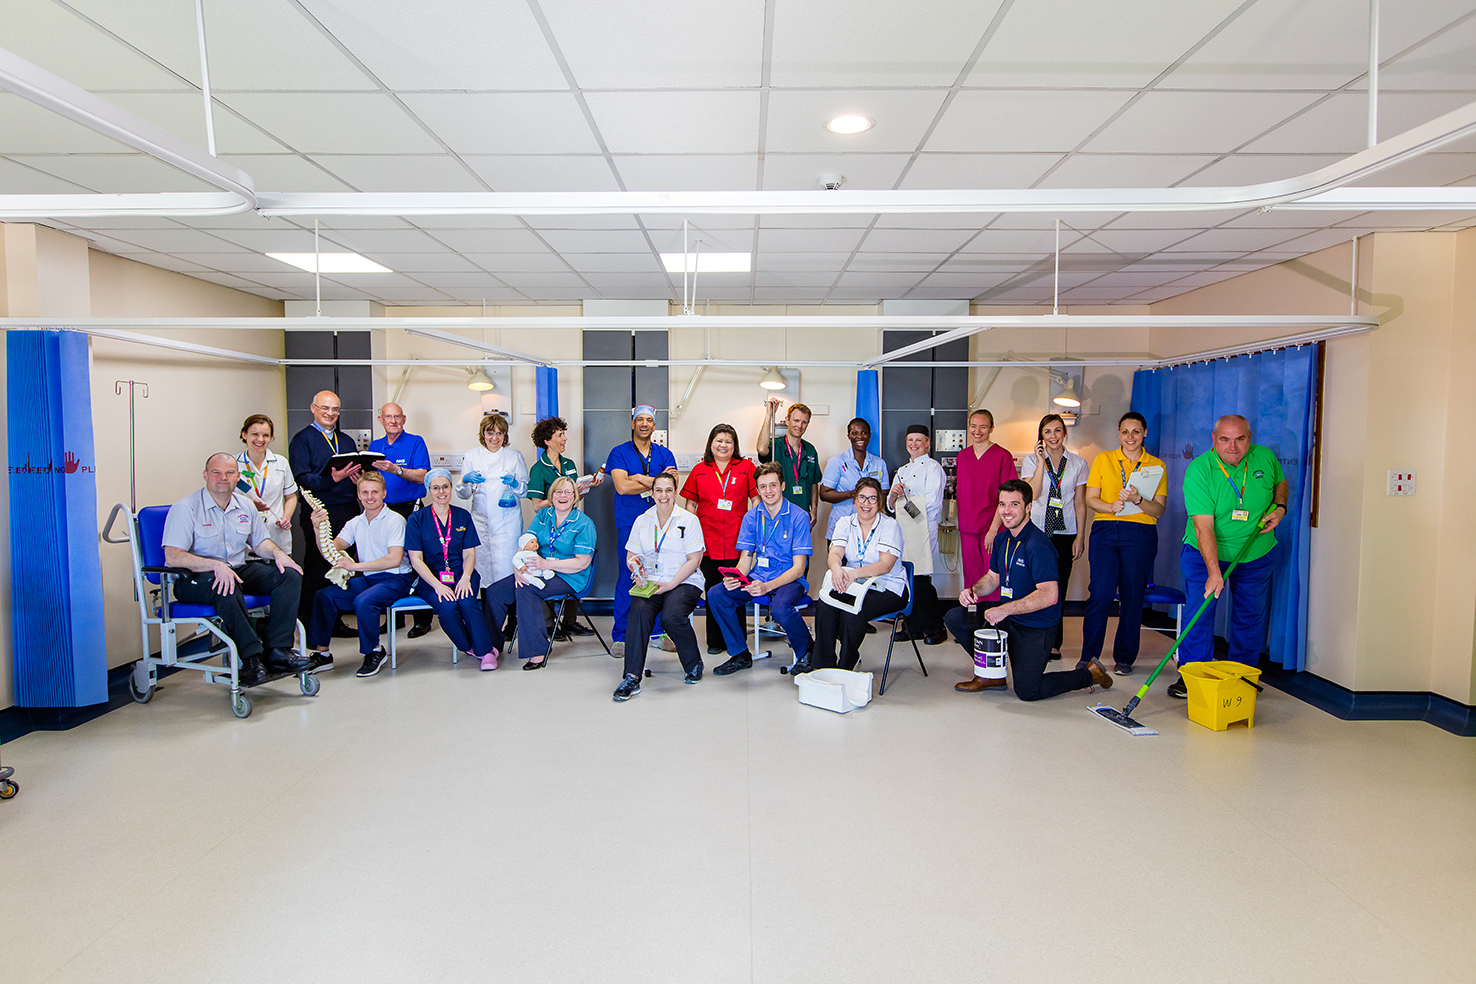 Staff from the Royal Bournemouth and Christchurch Hospitals Trust